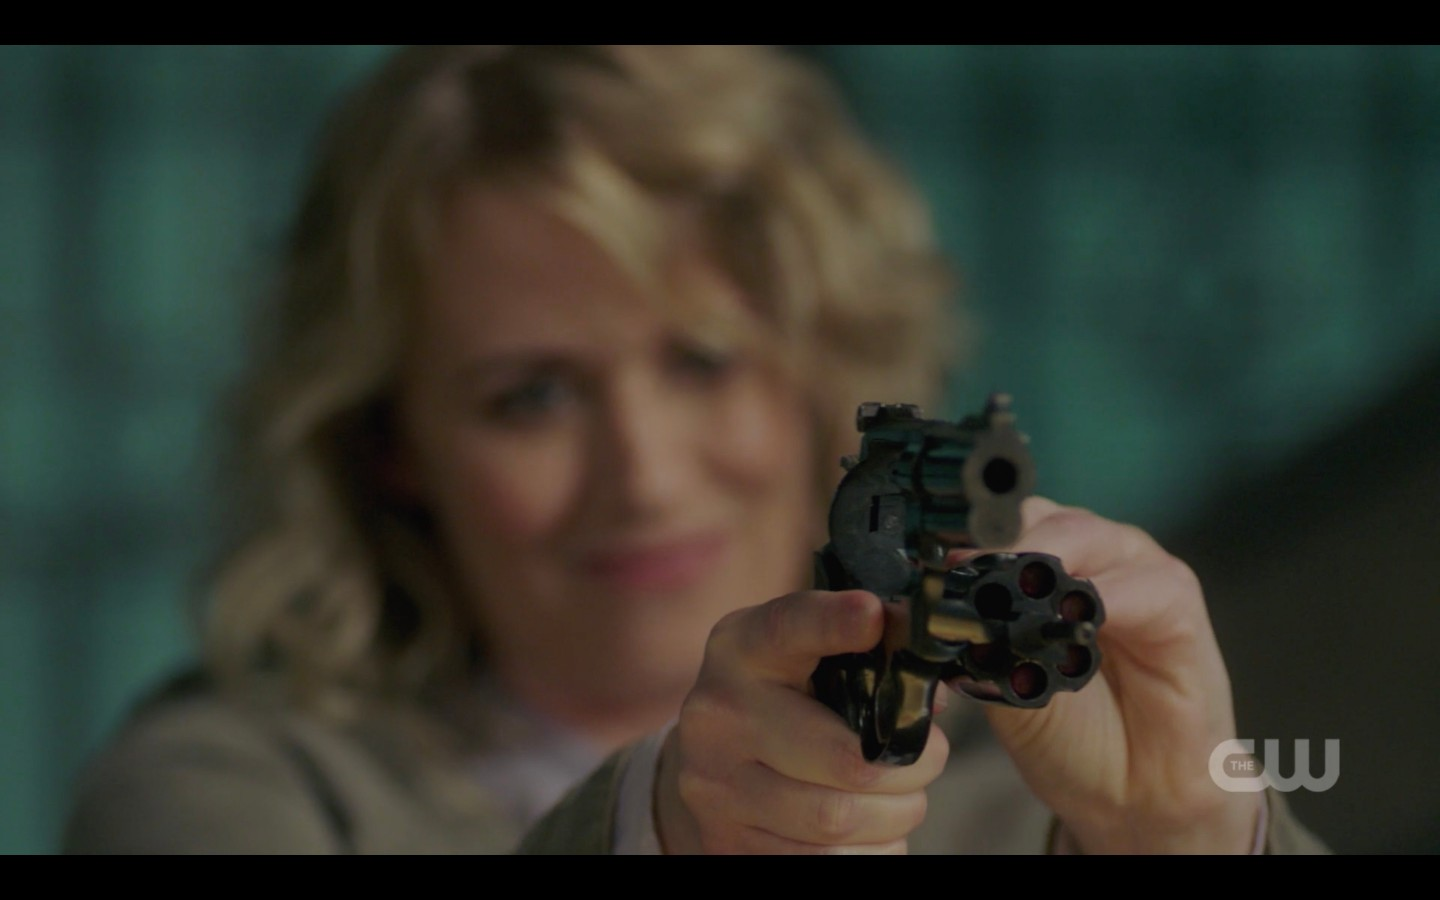 supernatural mary winchester has one bullet in gun for sam